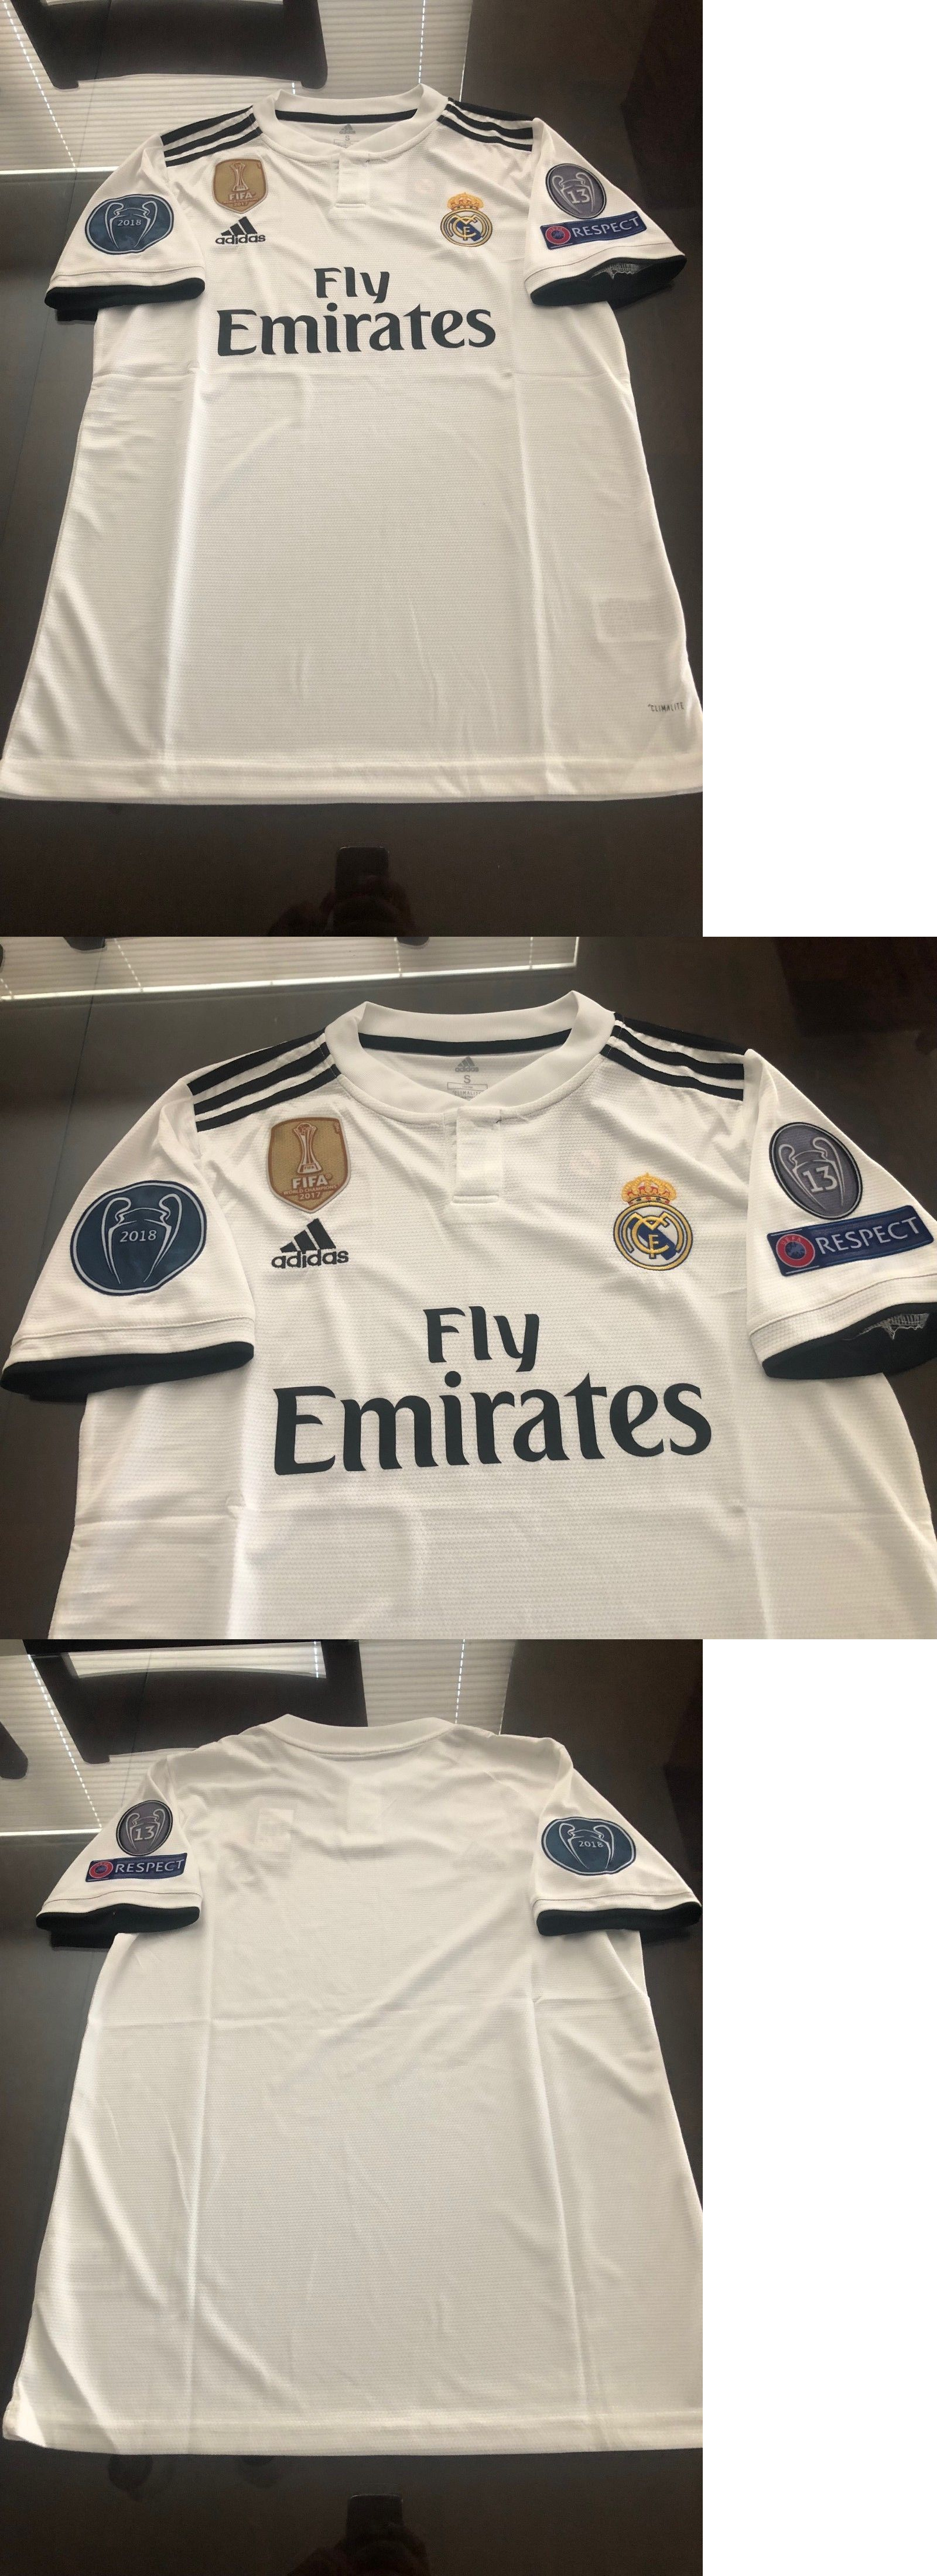 223e4719d Clothing 33485  Adidas Real Madrid Home Soccer Jersey 2018-2019 Champions  Patches Sizes White -  BUY IT NOW ONLY   34 on  eBay  clothing  adidas   madrid ...